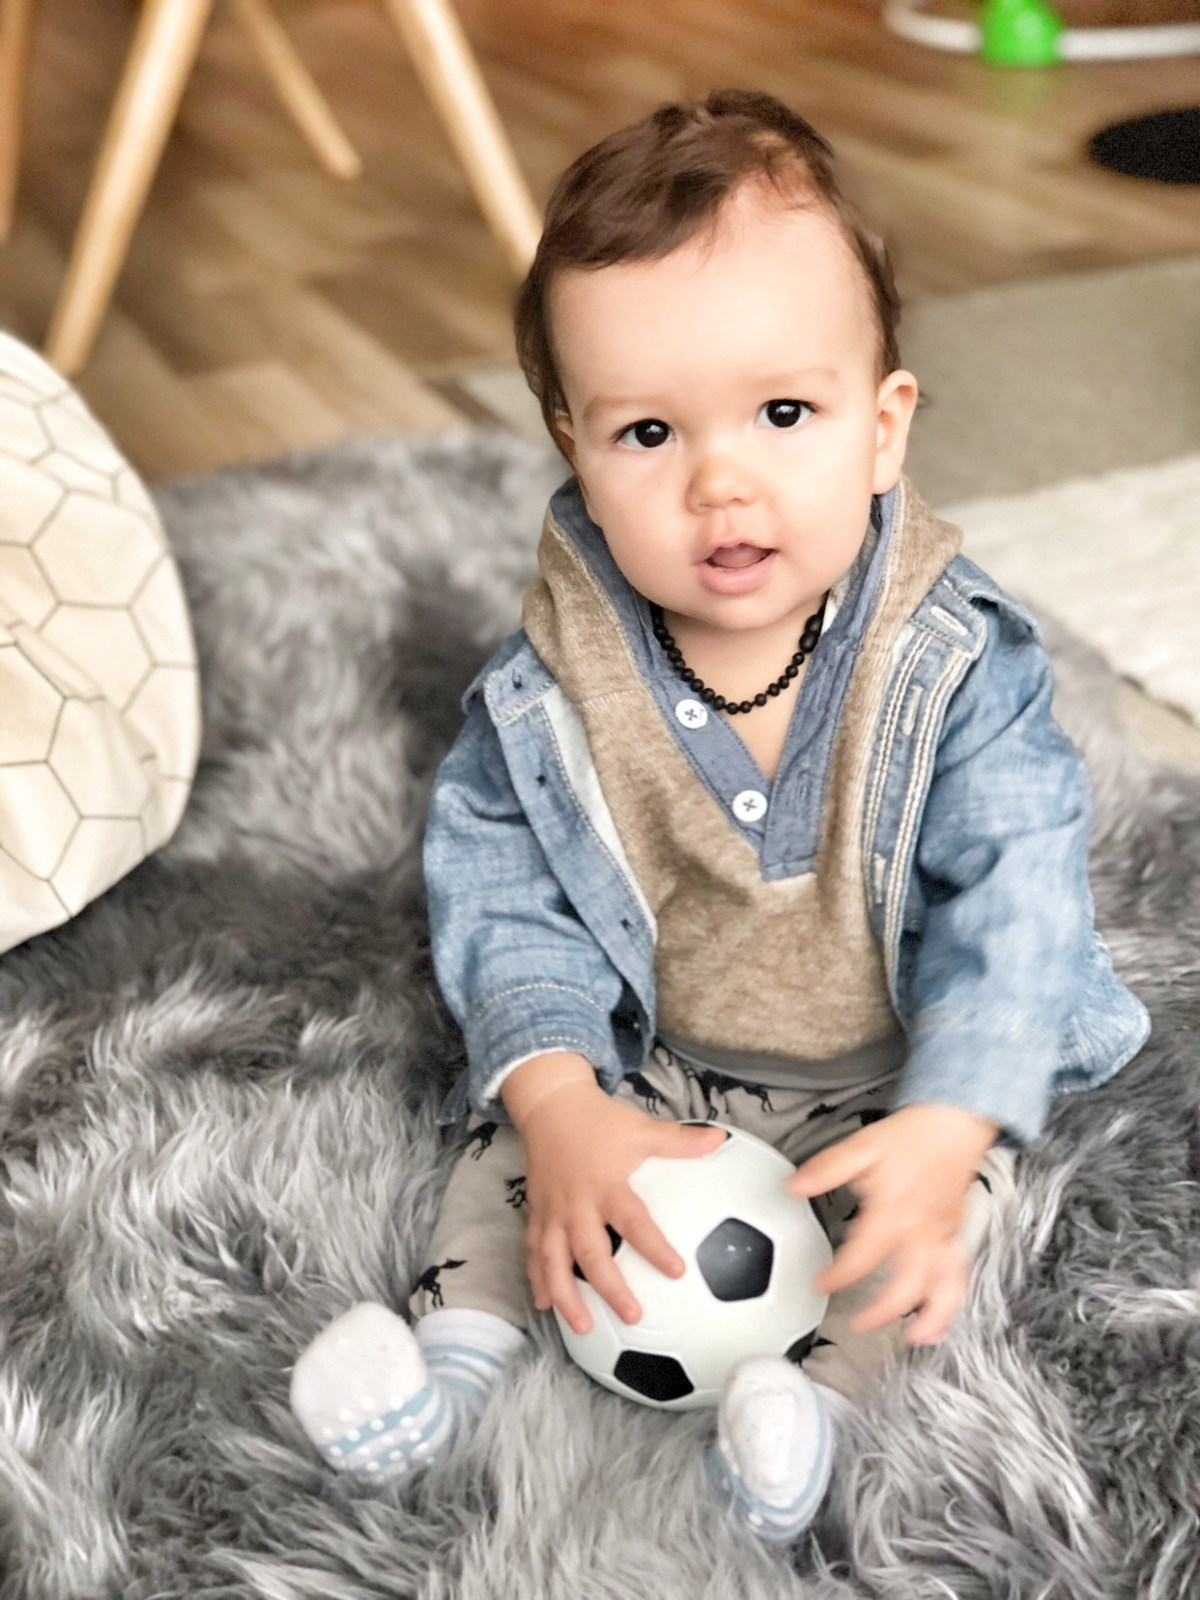 playing with the soccer ball